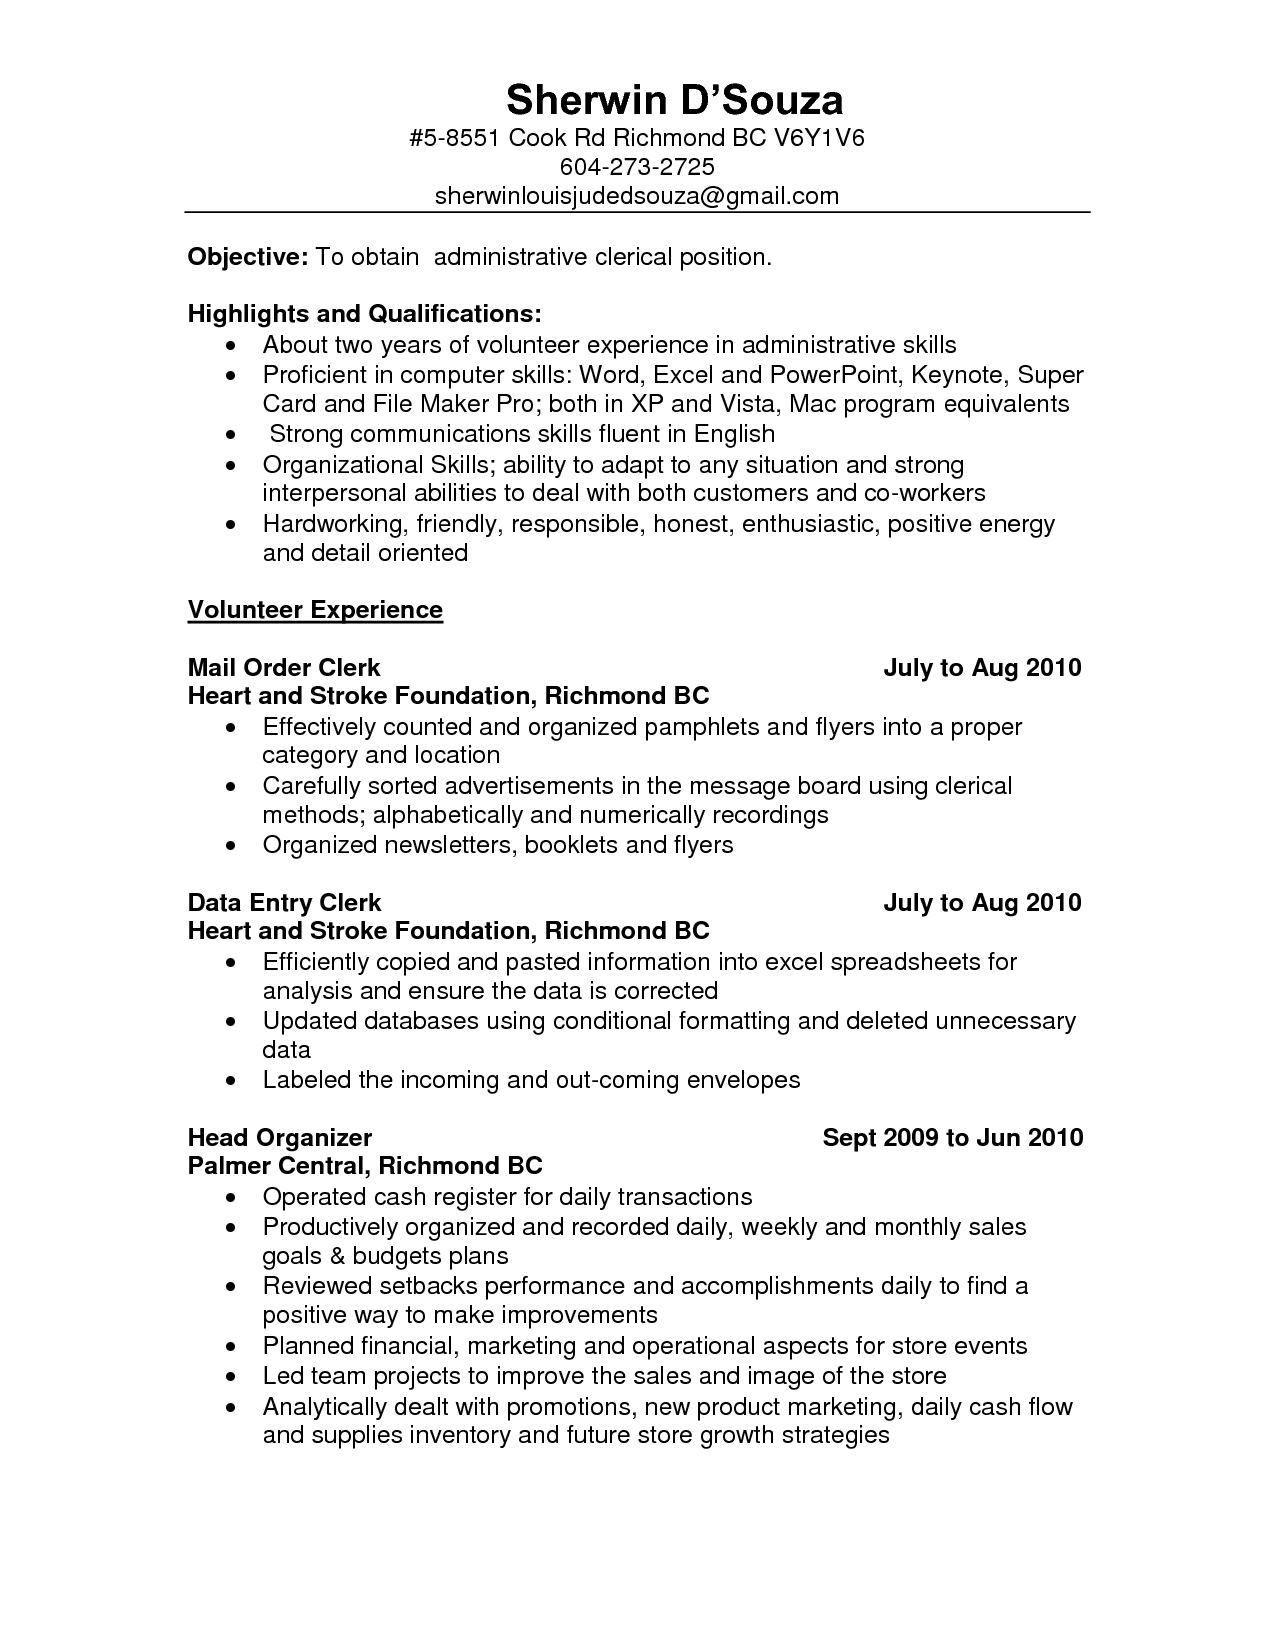 Law Clerk Resume Sample Highlights And Qualifications